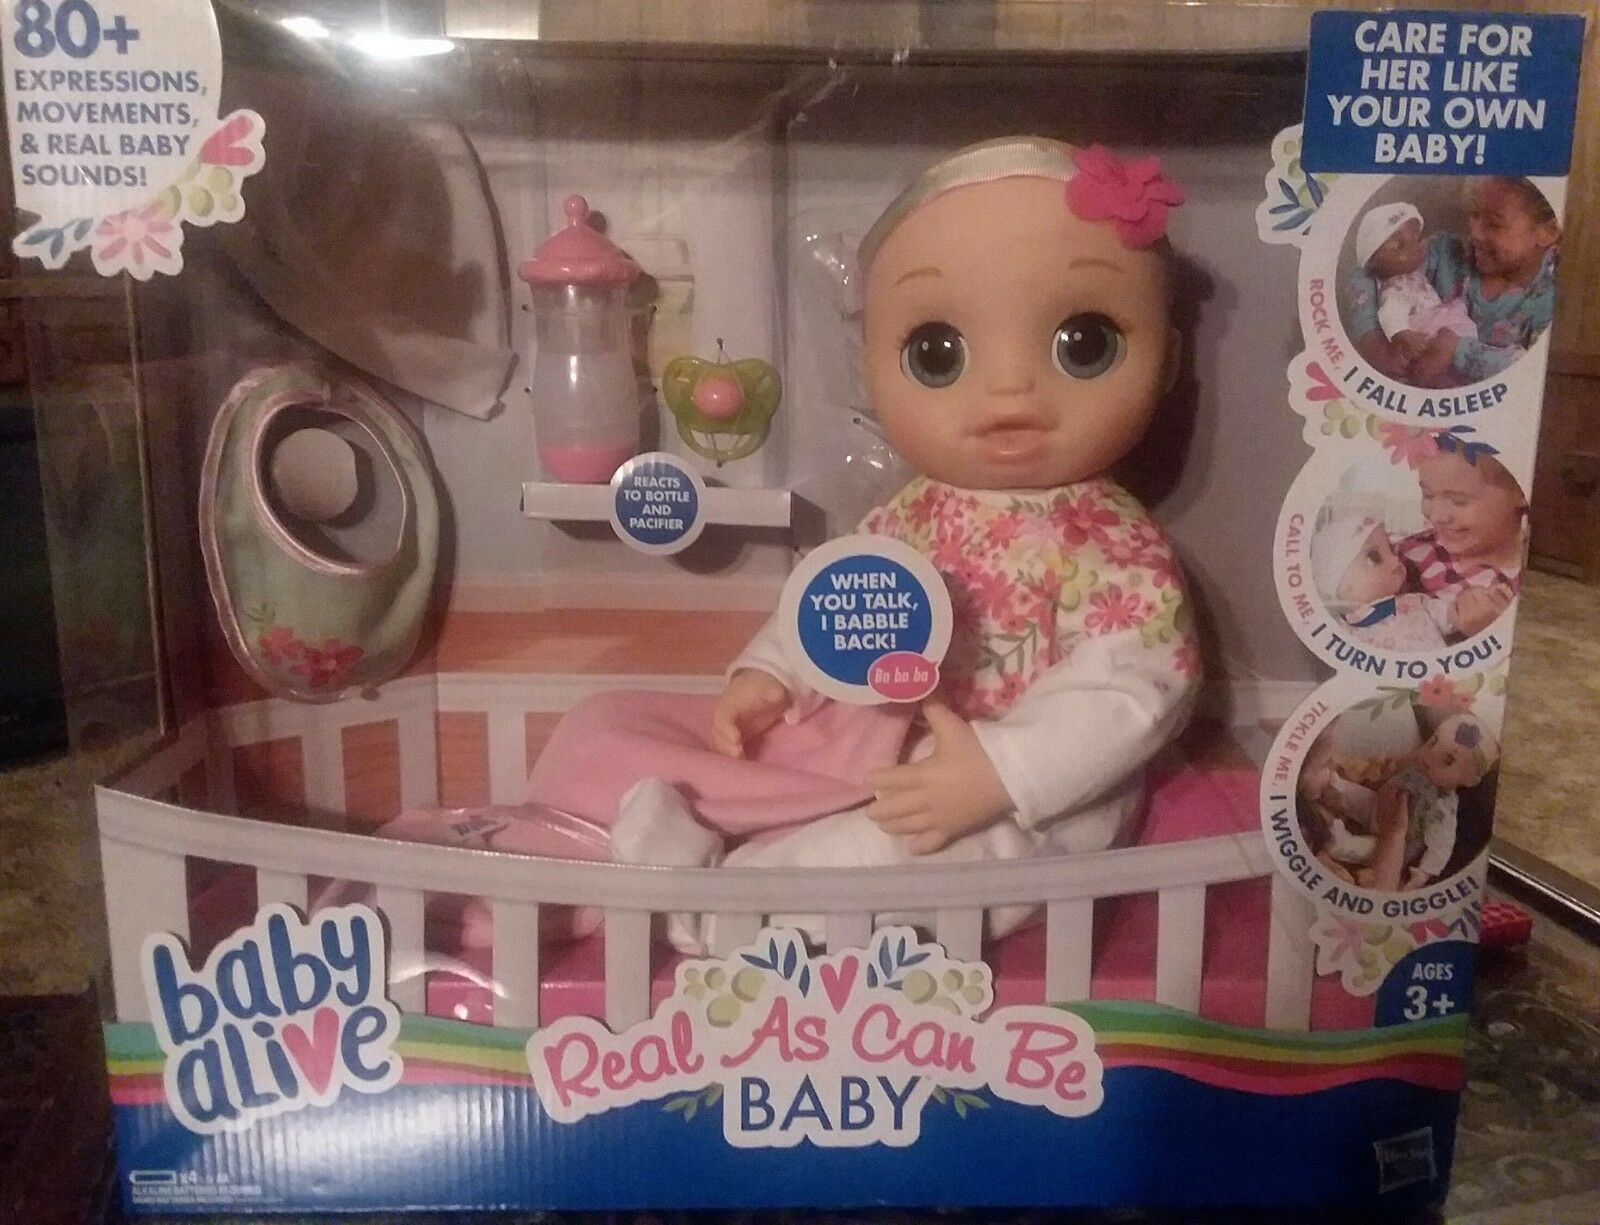 Baby Alive REAL AS CAN BE BABY DOLL BLONDE SCULPTED HAIR NEW IN BOX NEW RELEASE